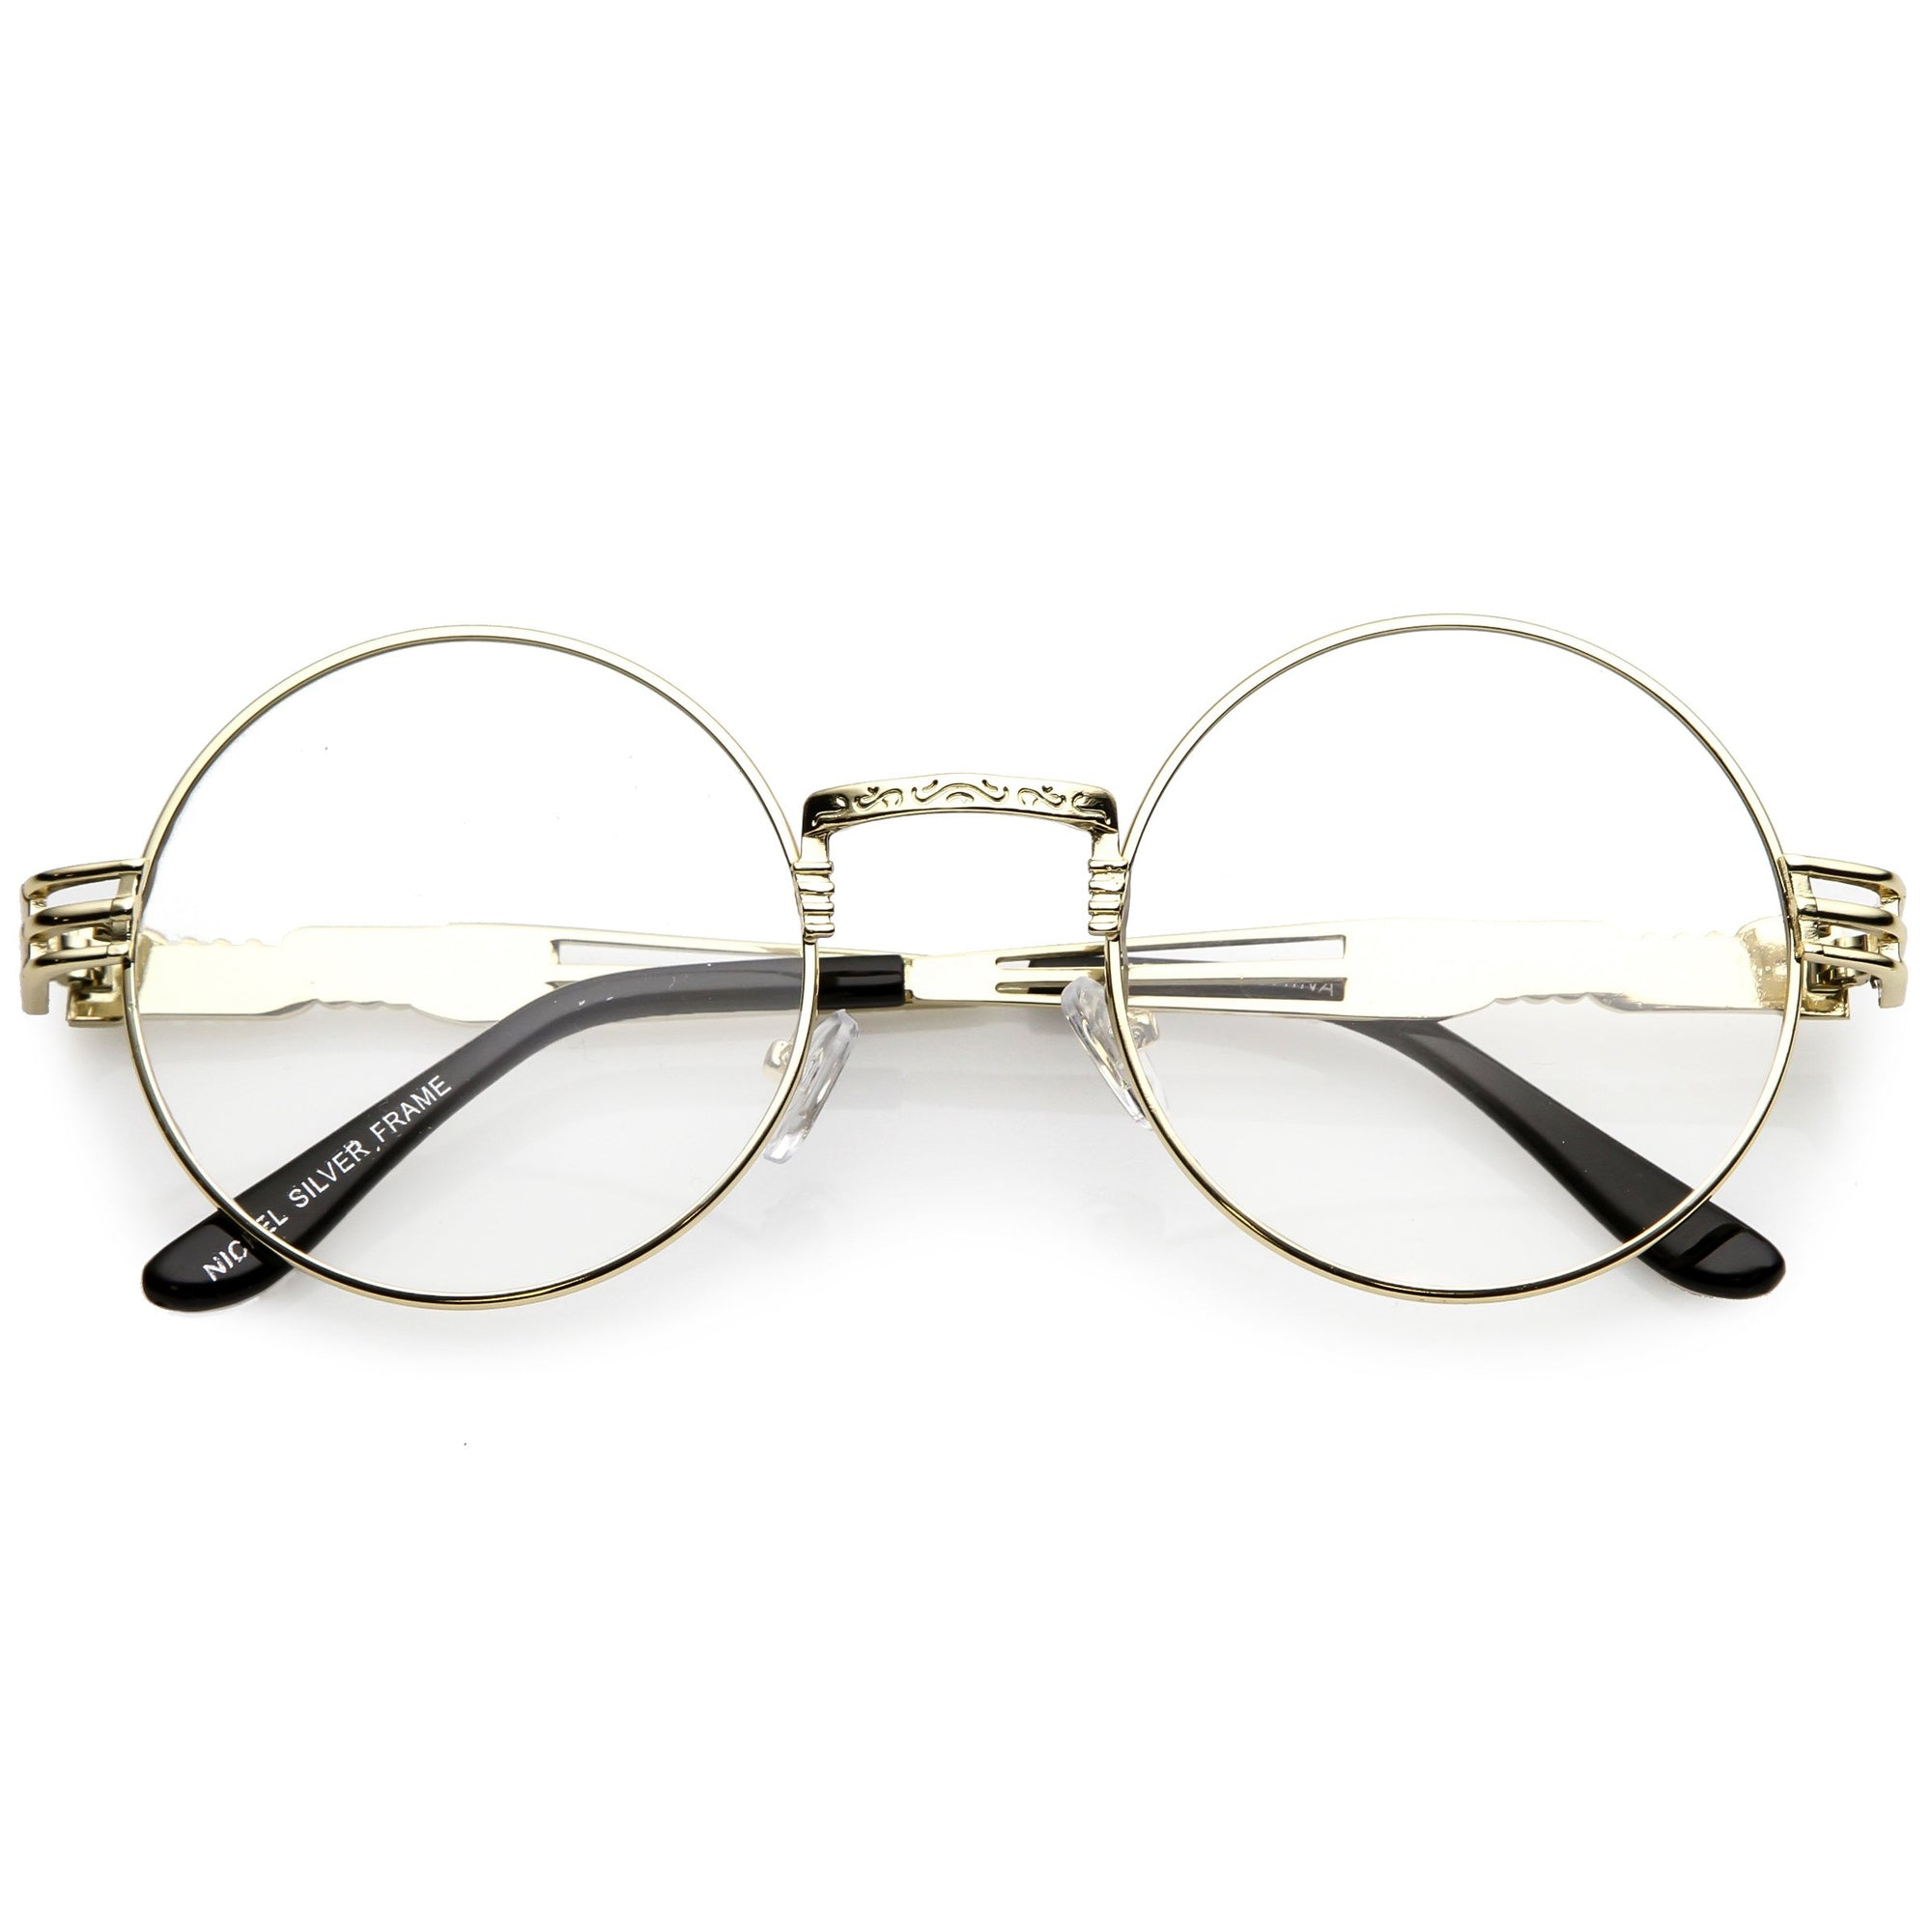 cc1a426f39 Retro Dapper Round Metal Clear Lens Glasses C300